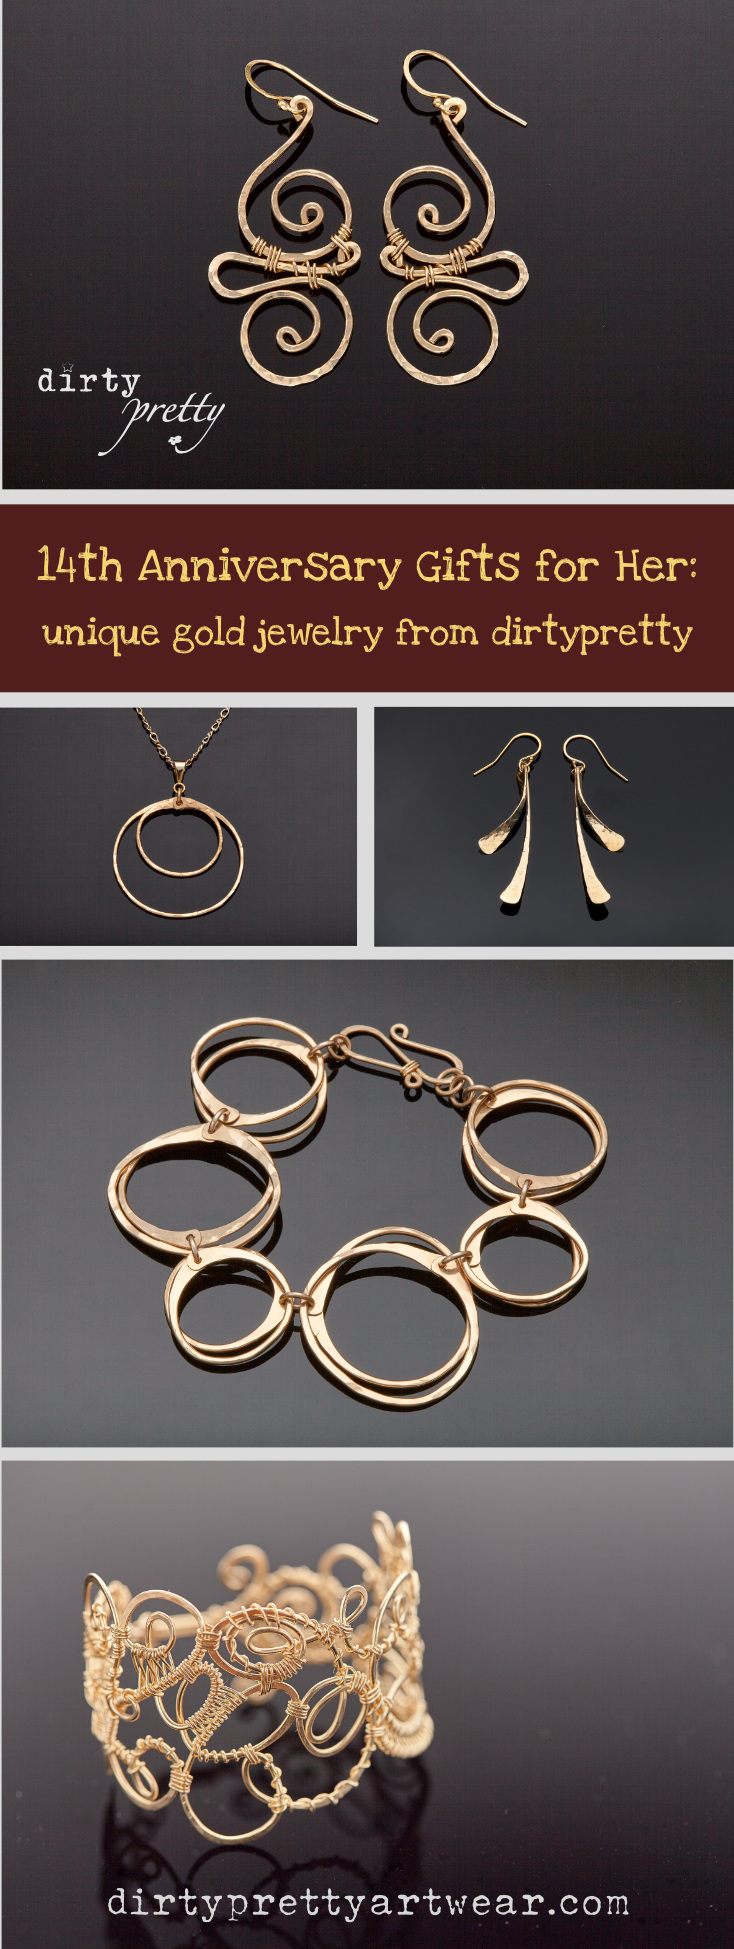 Looking For Unique 14th Anniversary Gifts Her Dirtypretty Artwear S Gold Jewelry Is The Perfect Wedding Gift Your Wife Or